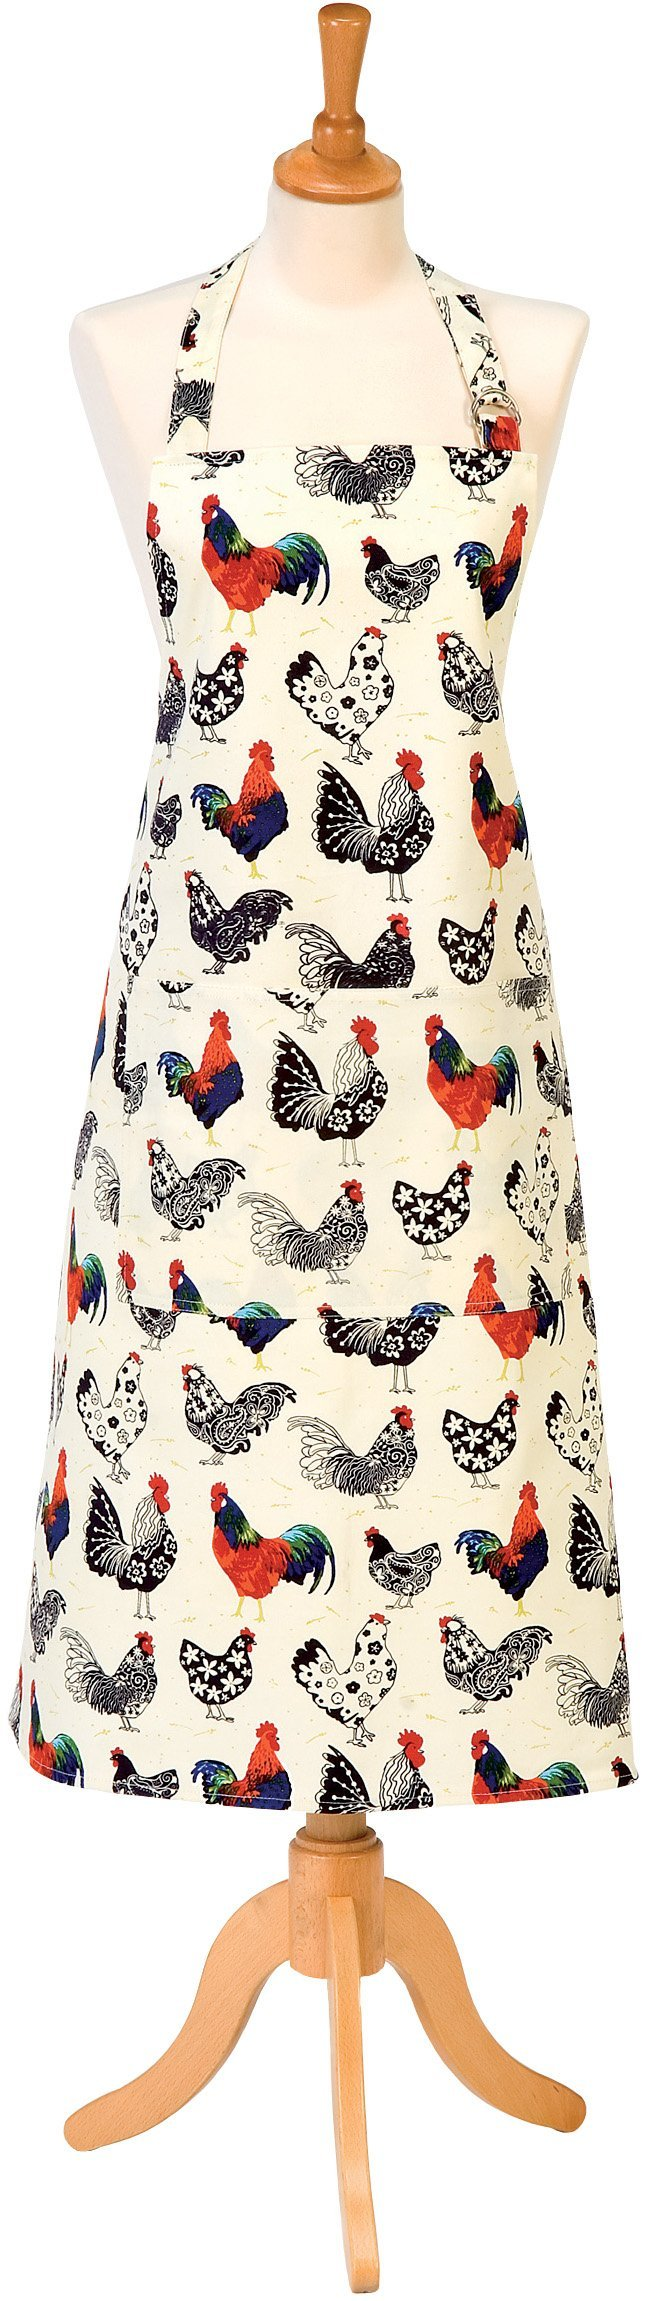 Ulster Weavers Rooster Cotton Apron